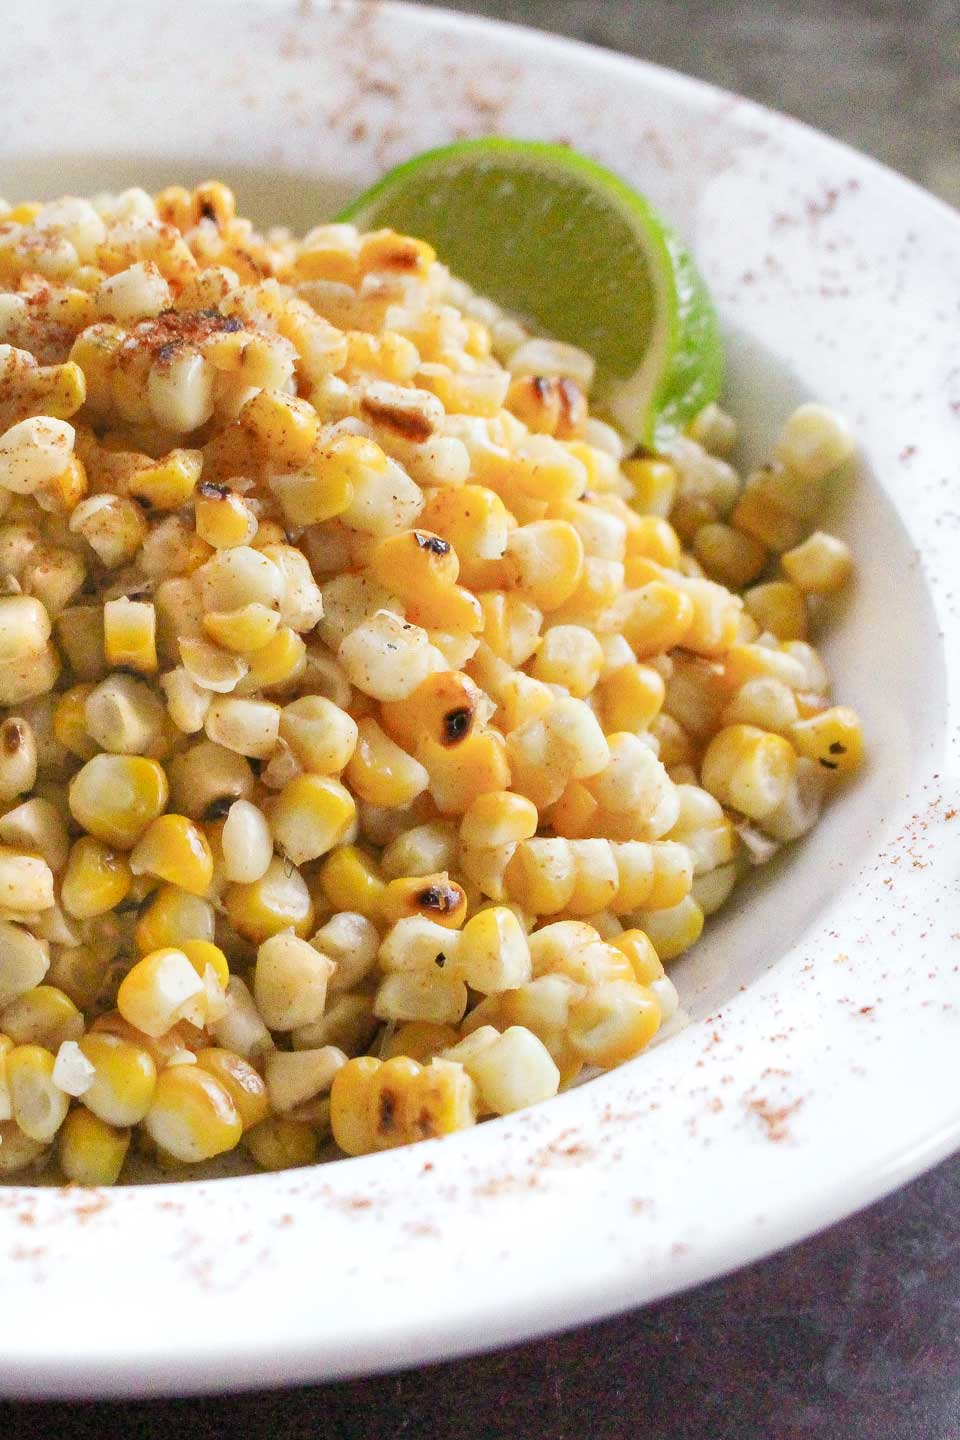 The right half of a rimmed white bowl full of grilled corn salad, sprinkled with spice and garnished with a lime wedge.